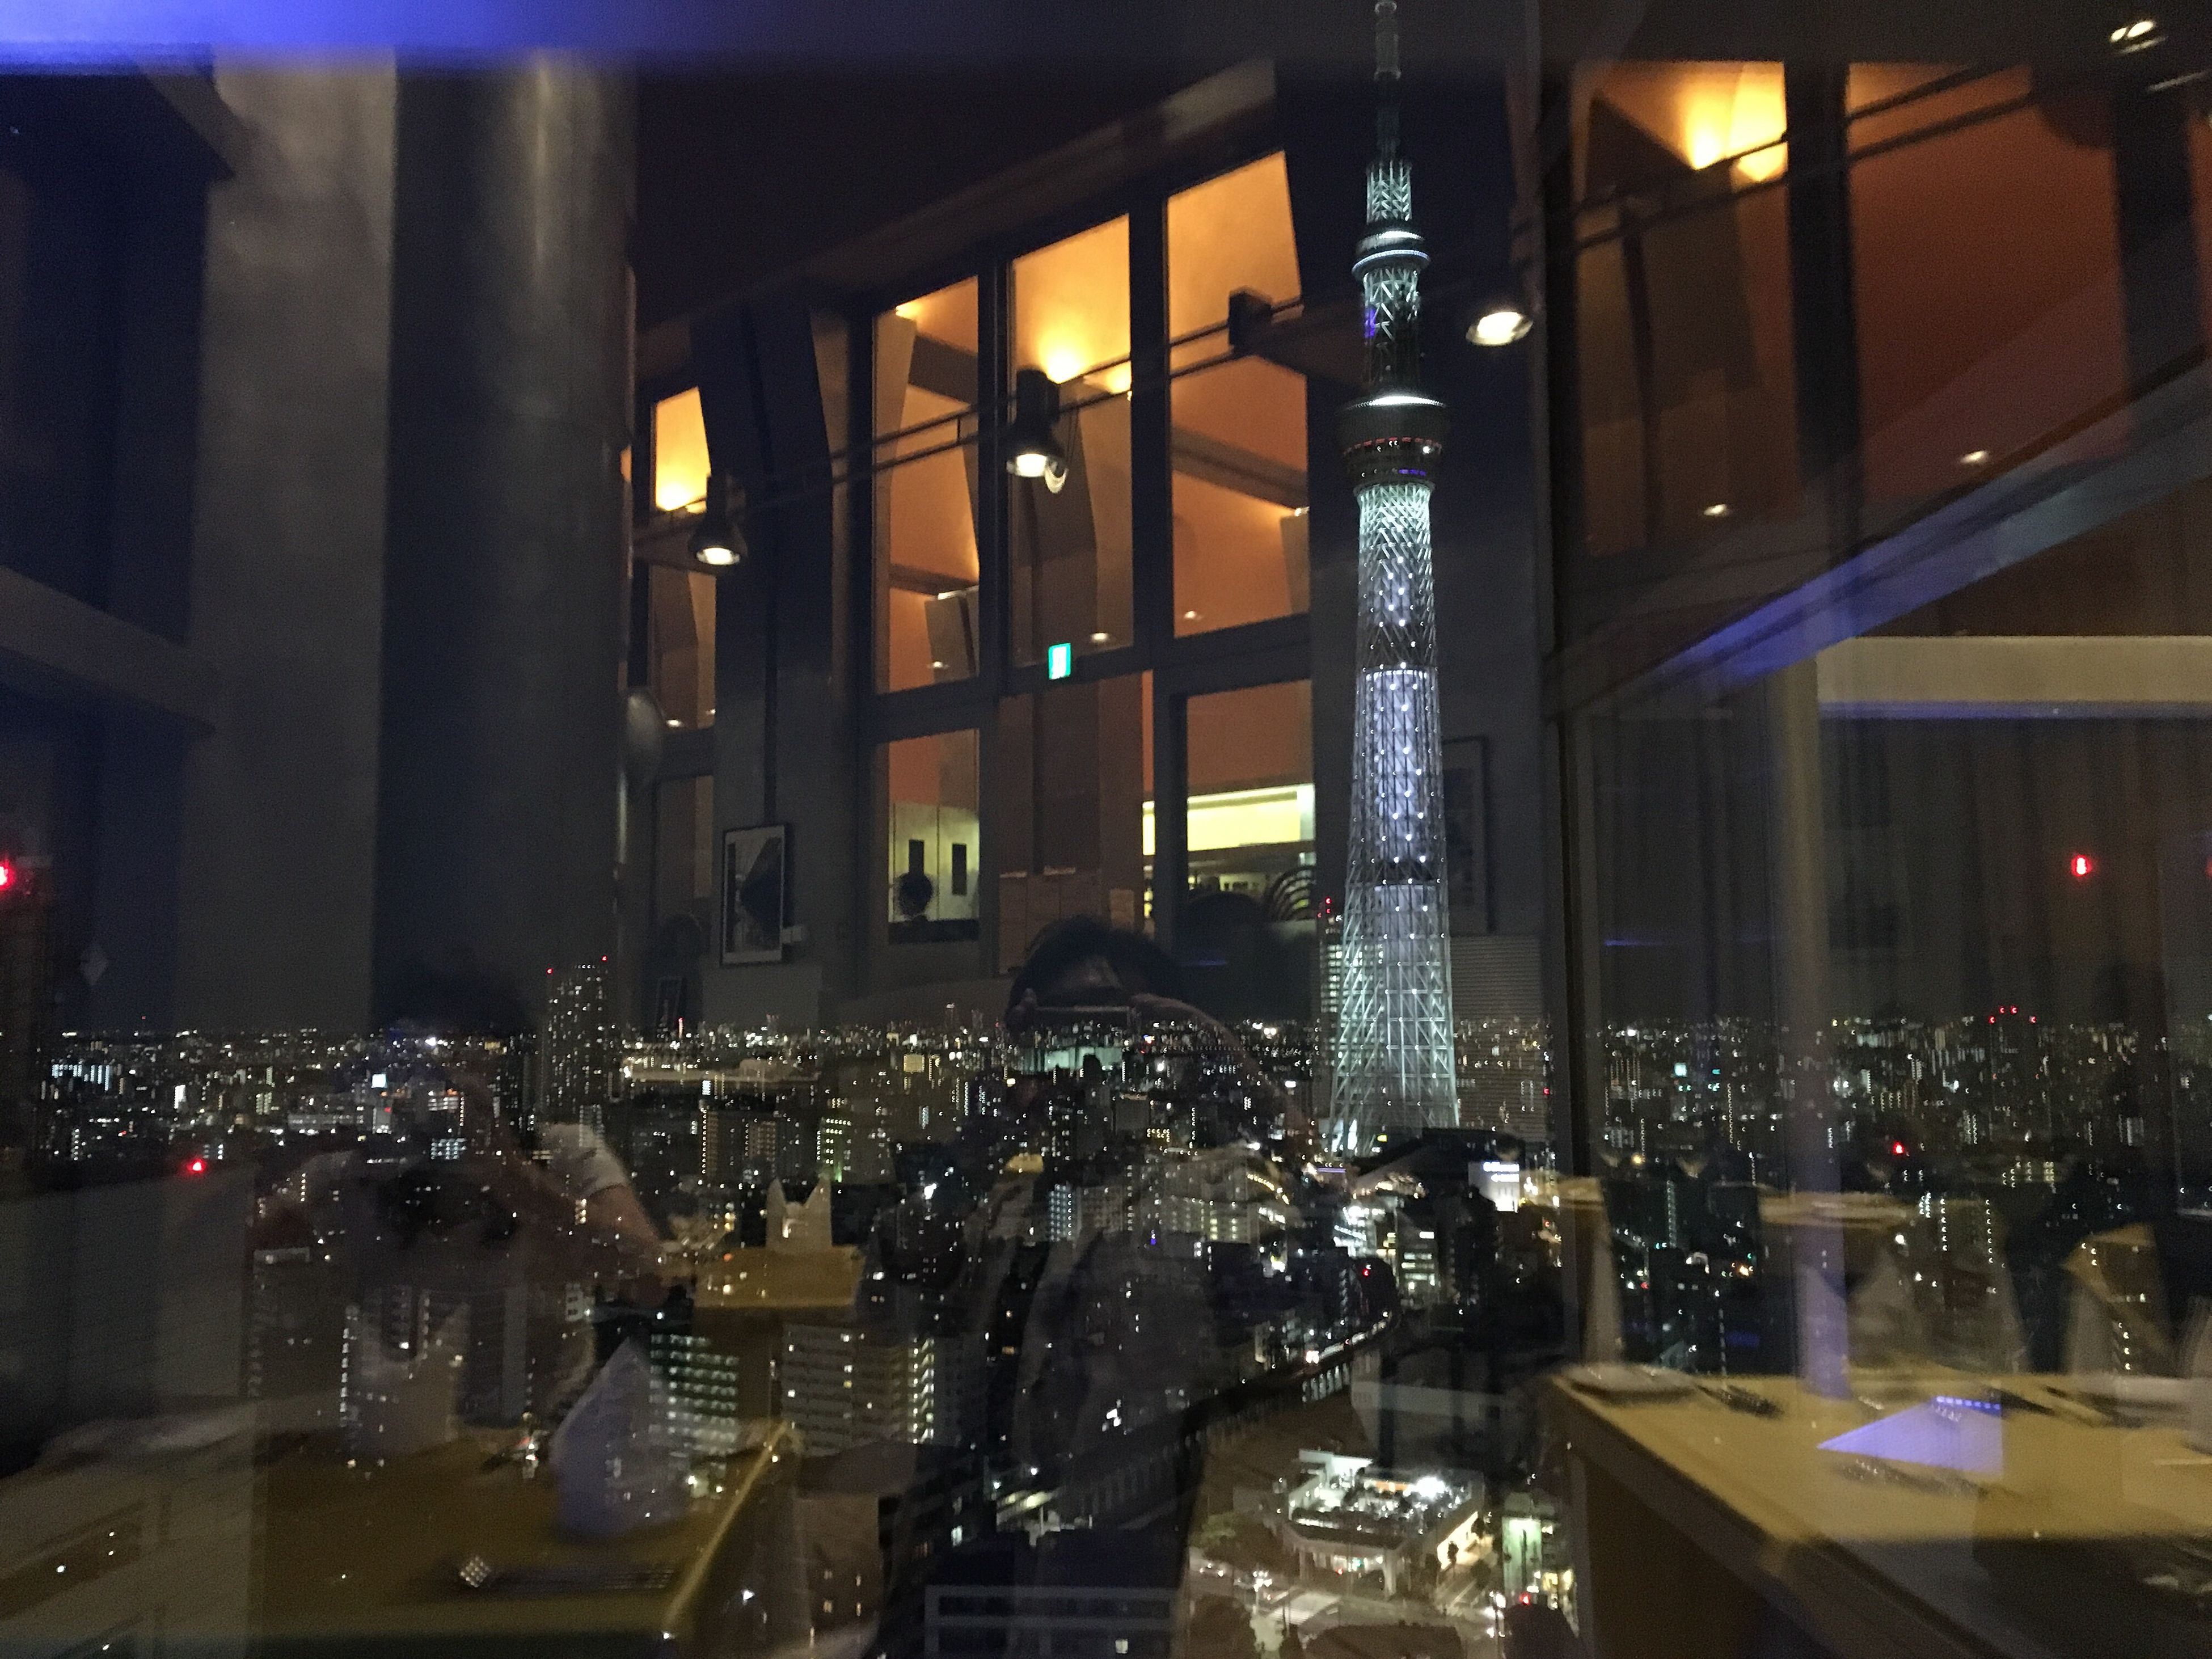 illuminated, indoors, restaurant, night, architecture, no people, built structure, alcohol, city